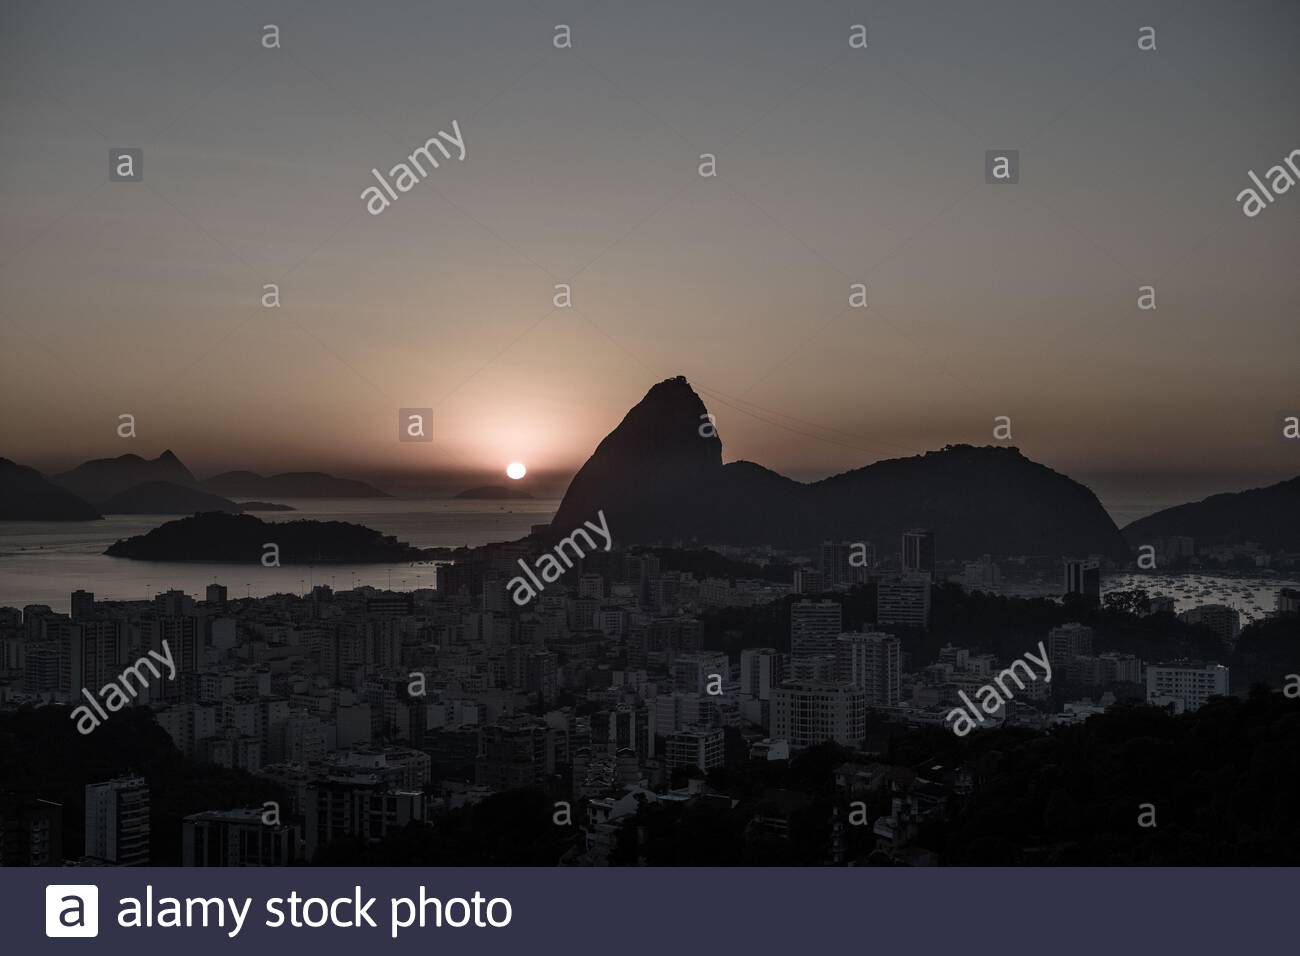 The skyline of Sugarloaf Mountain and Botafogo in Rio de Janeiro, Brazil in the early morning at sunrise. Seen from Santa Teresa Stock Photo